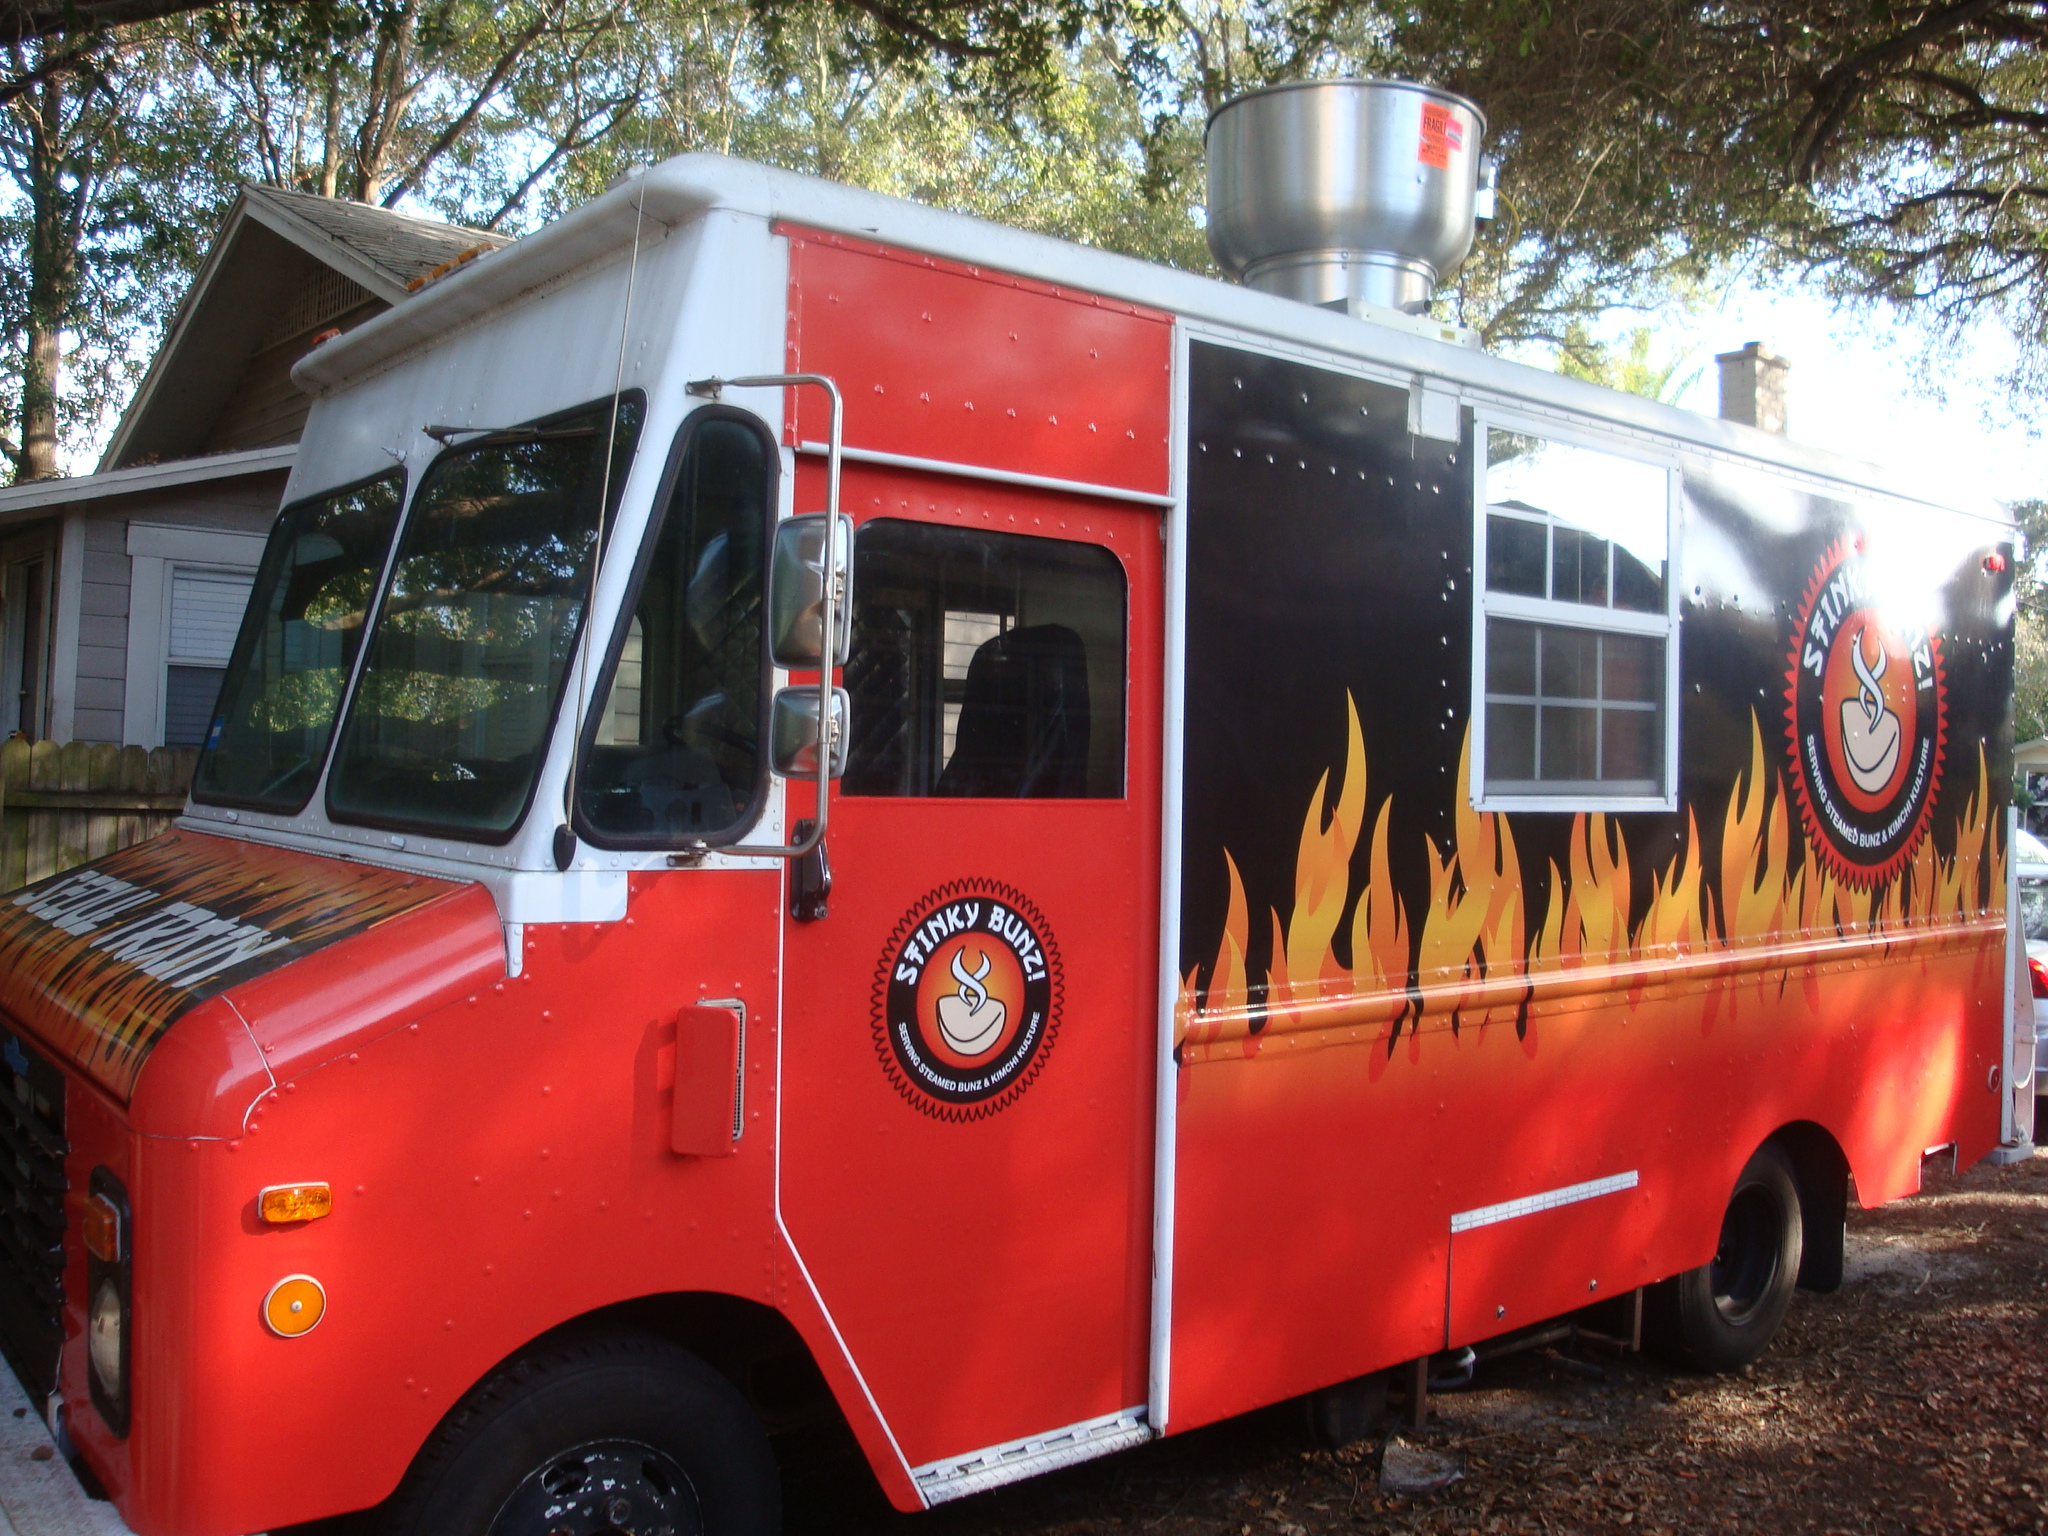 Stinky Buns Food Truck For Sale